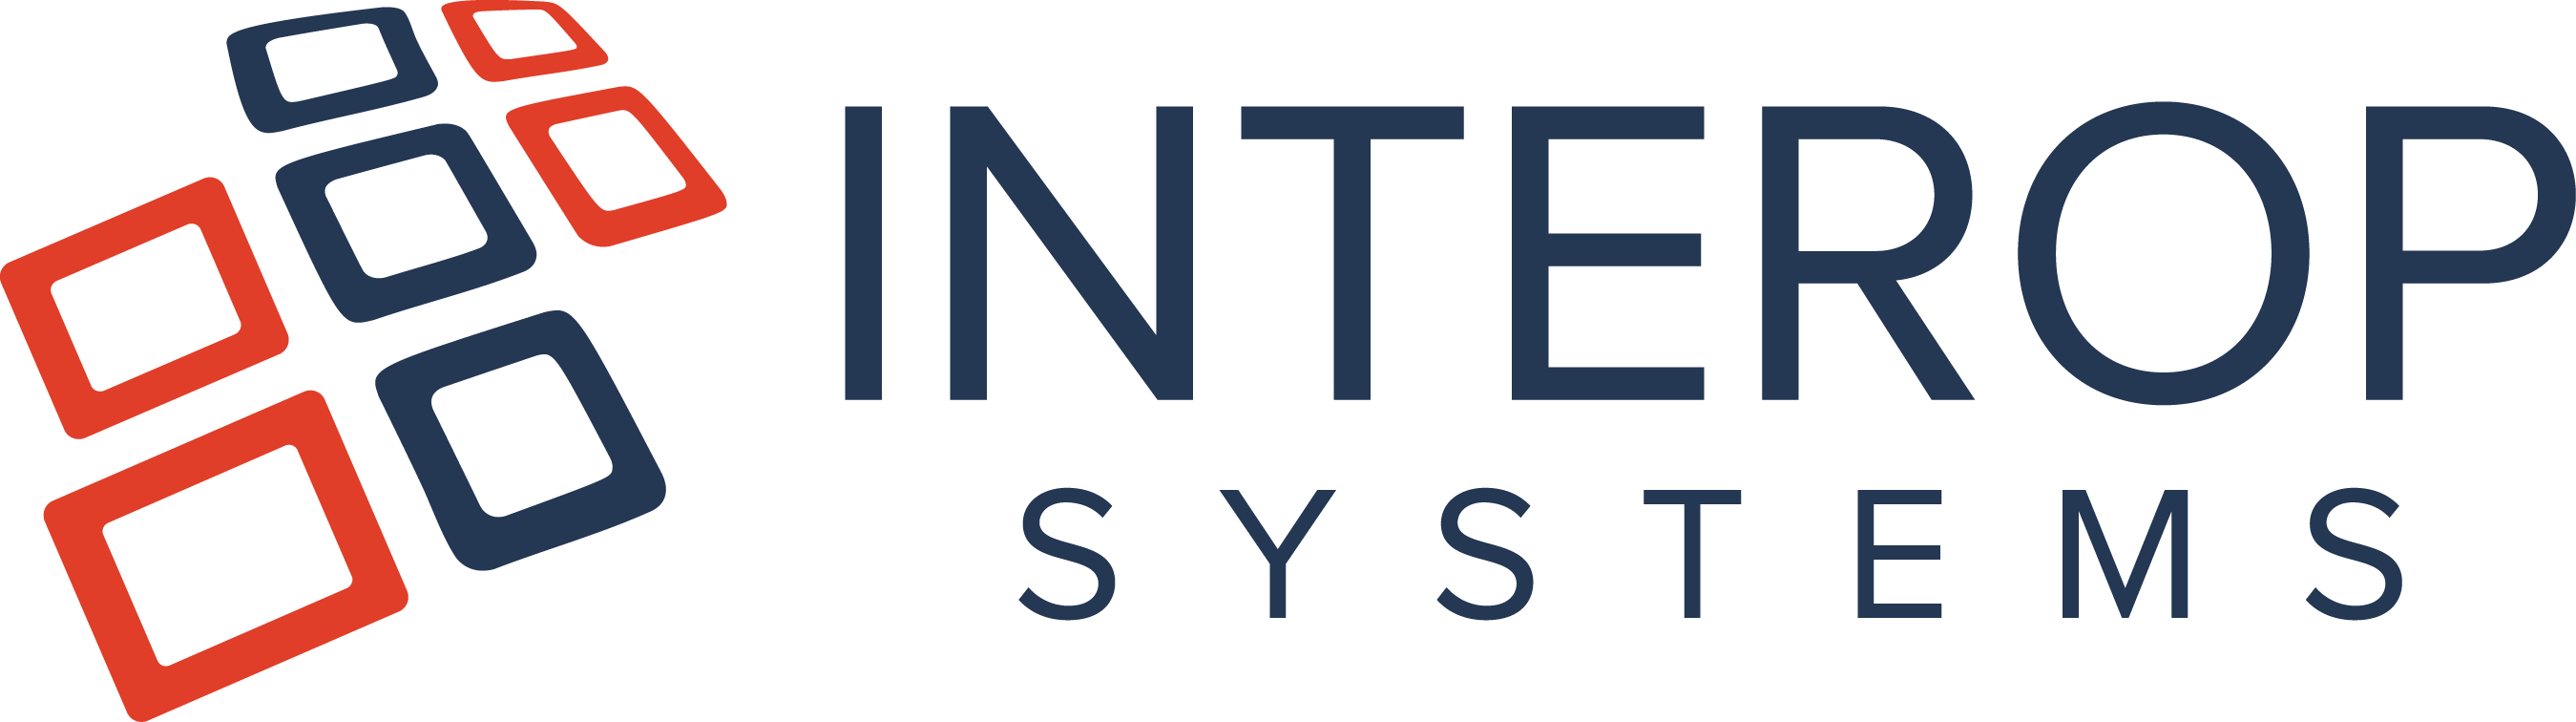 Interop Systems needs a cleaner, fresher logo